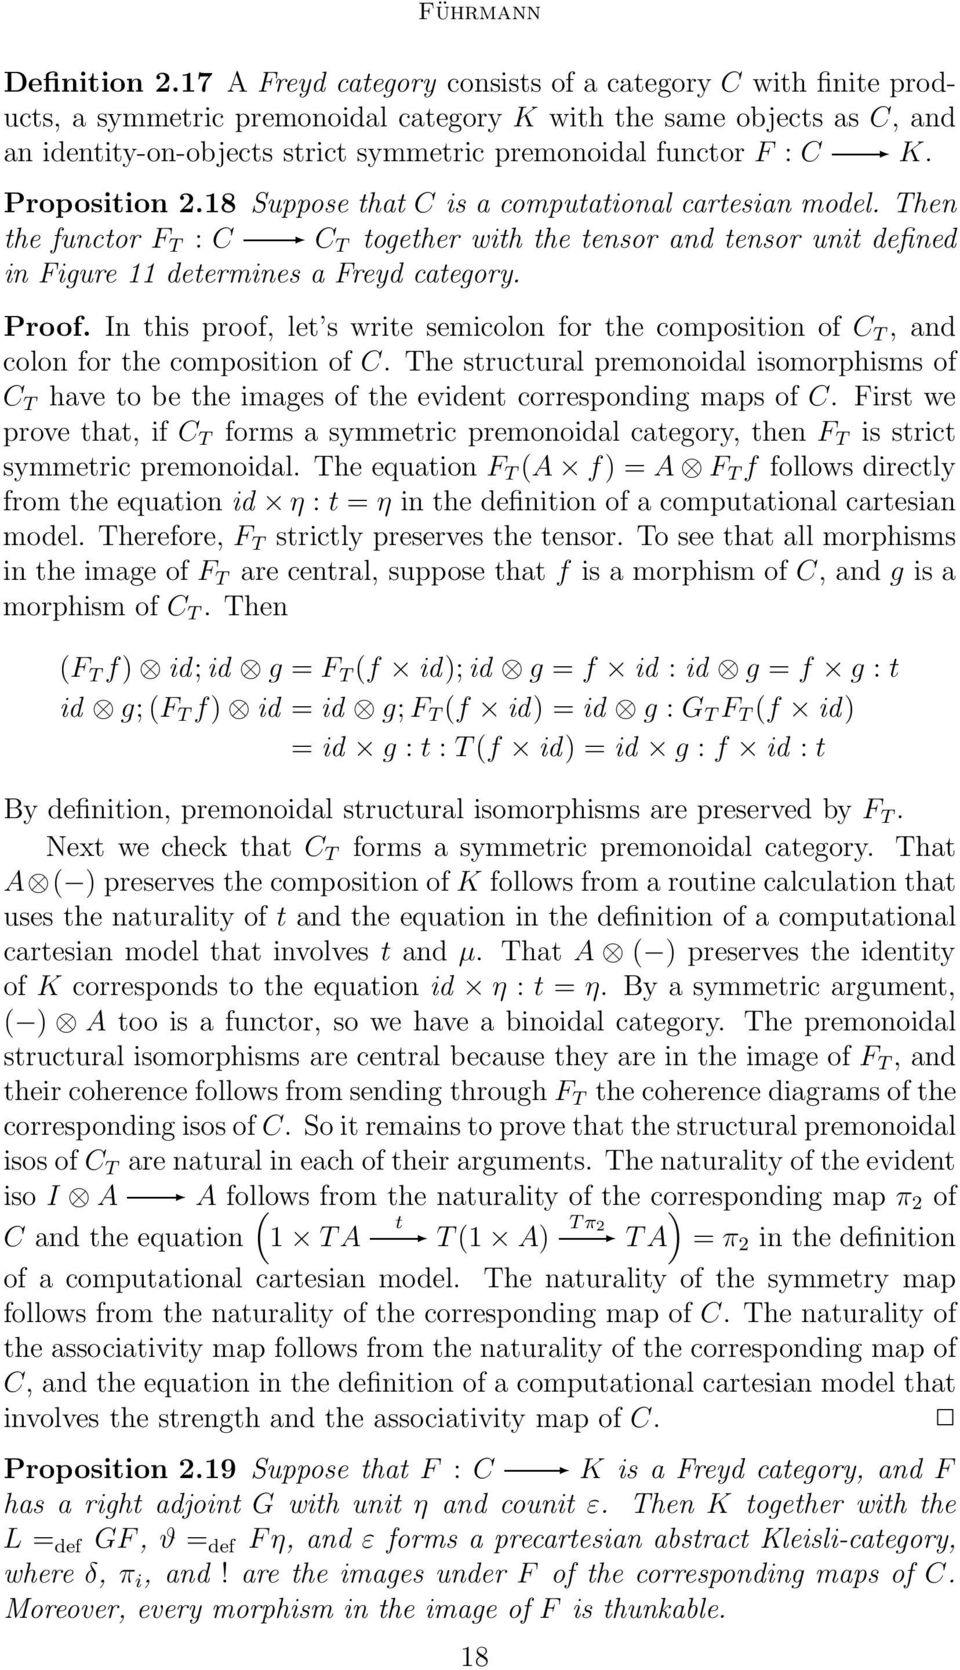 K. Proposition 2.18 Suppose that C is a computational cartesian model. Then the functor F T : C C T together with the tensor and tensor unit defined in Figure 11 determines a Freyd category. Proof.